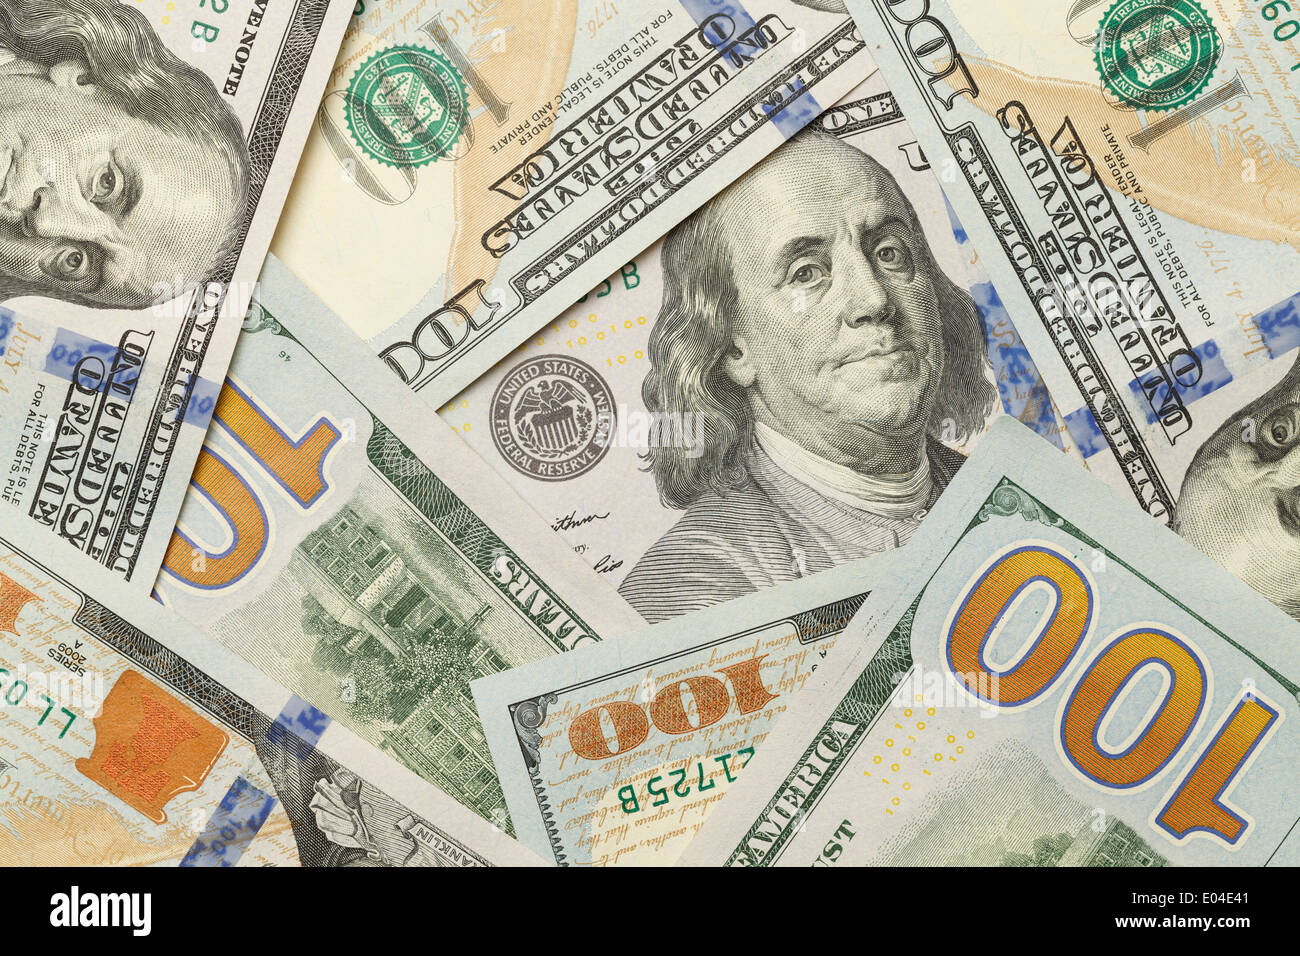 New One Hundred Dollar Bills in Scattered Pile Laying Flat. - Stock Image